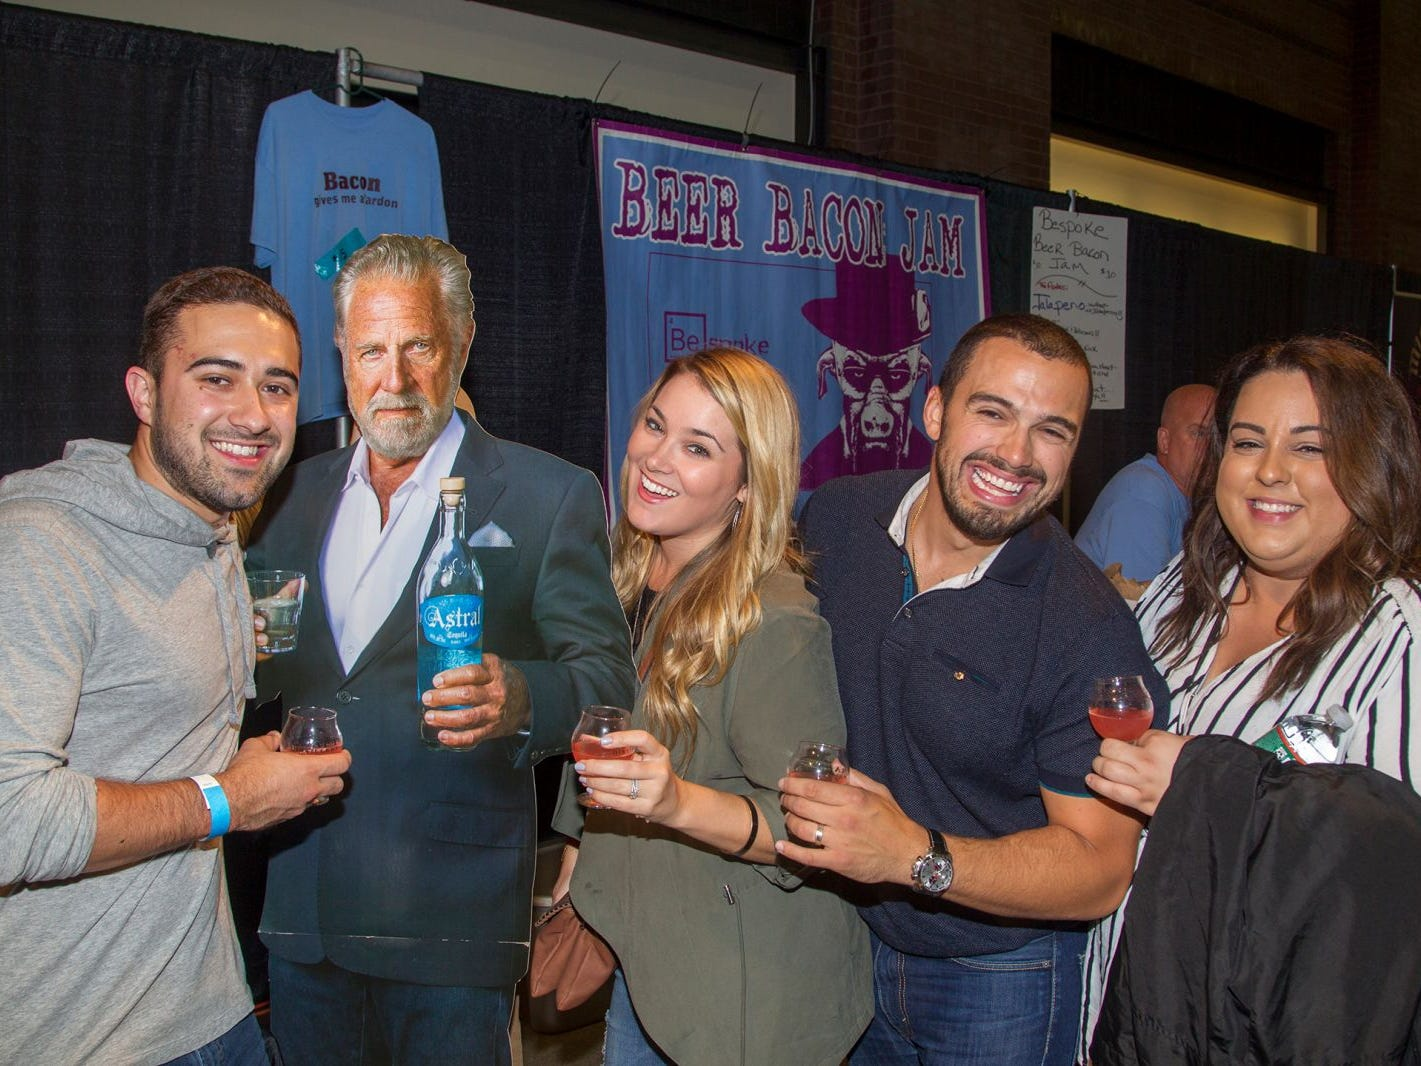 Lance, Maureen, John, Helen. Jersey City Craft Distillery Fest at the Harborside Atrium featured more than 100 styles of spirits. Guests had the chance to taste craft-distilled spirits from moonshine, rum, cognac, whiskey, vodka, gin, tequila and more. 09/08/2018